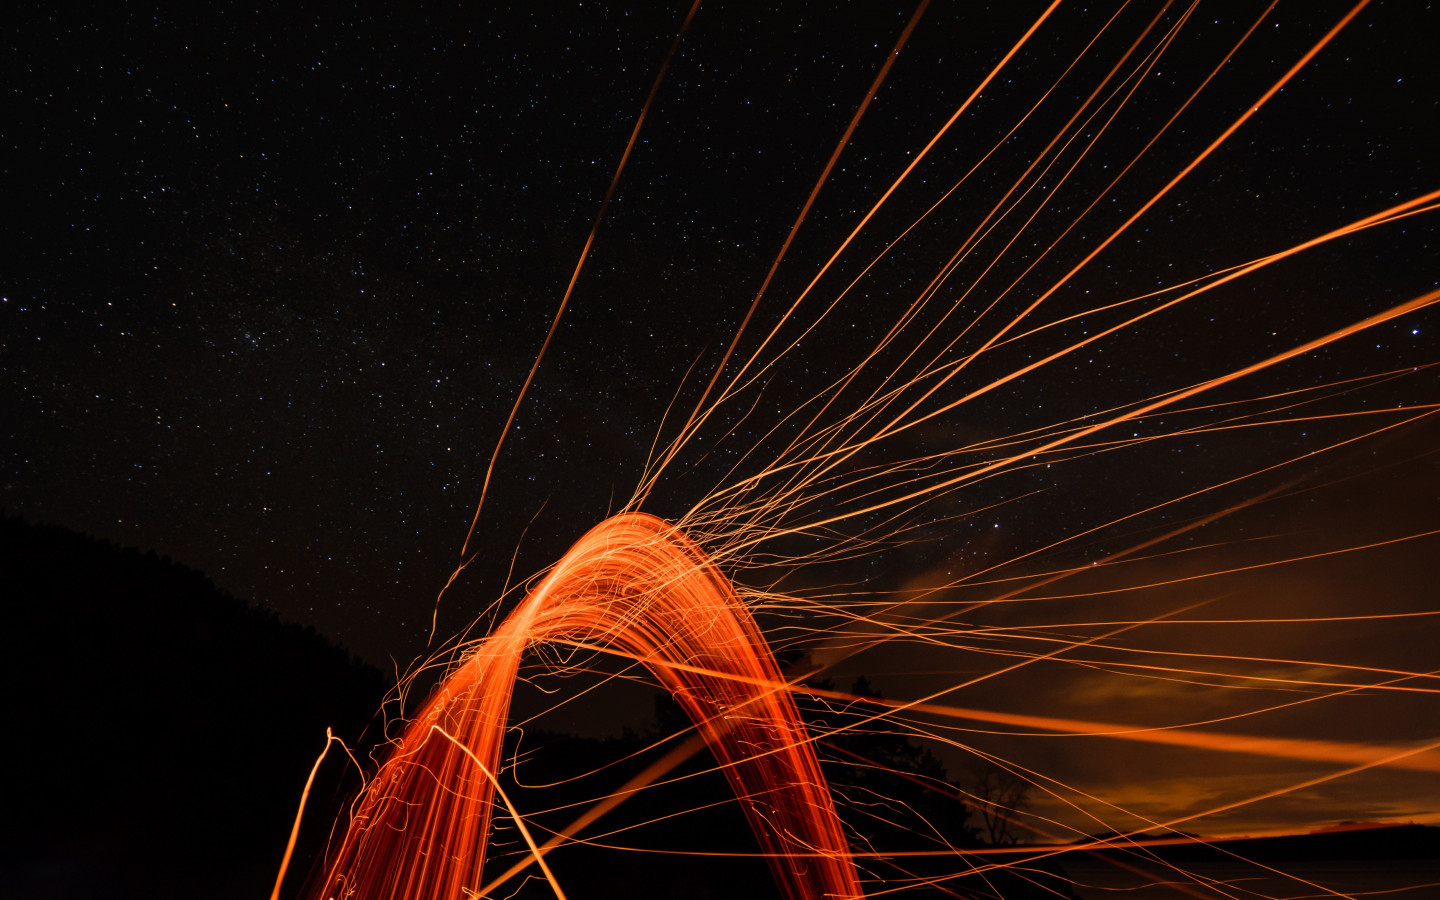 Flying sparks wallpaper 1440x900